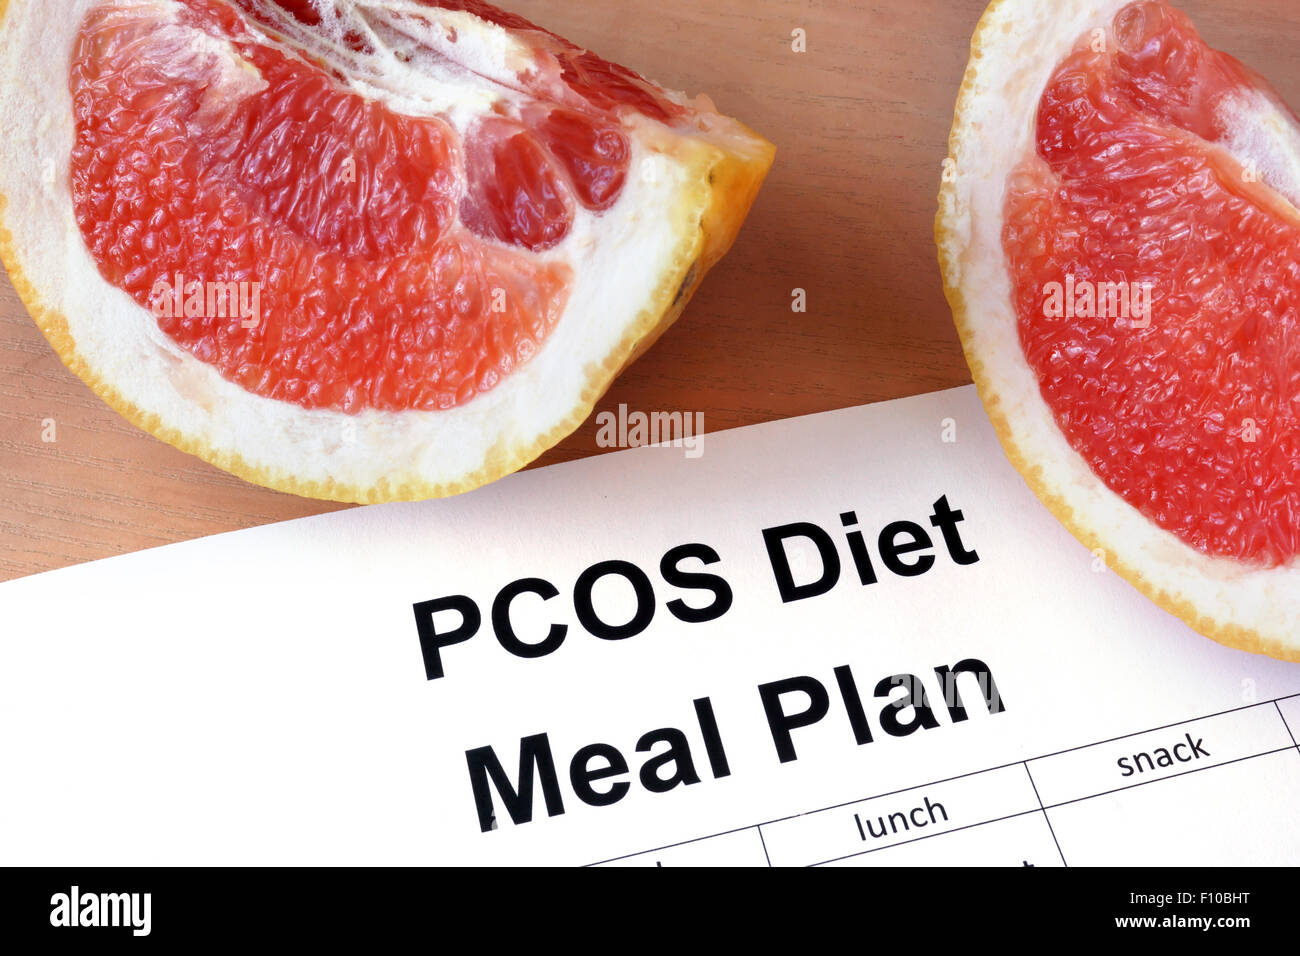 Paper with PCOS diet  Meal plan and grapefruit - Stock Image